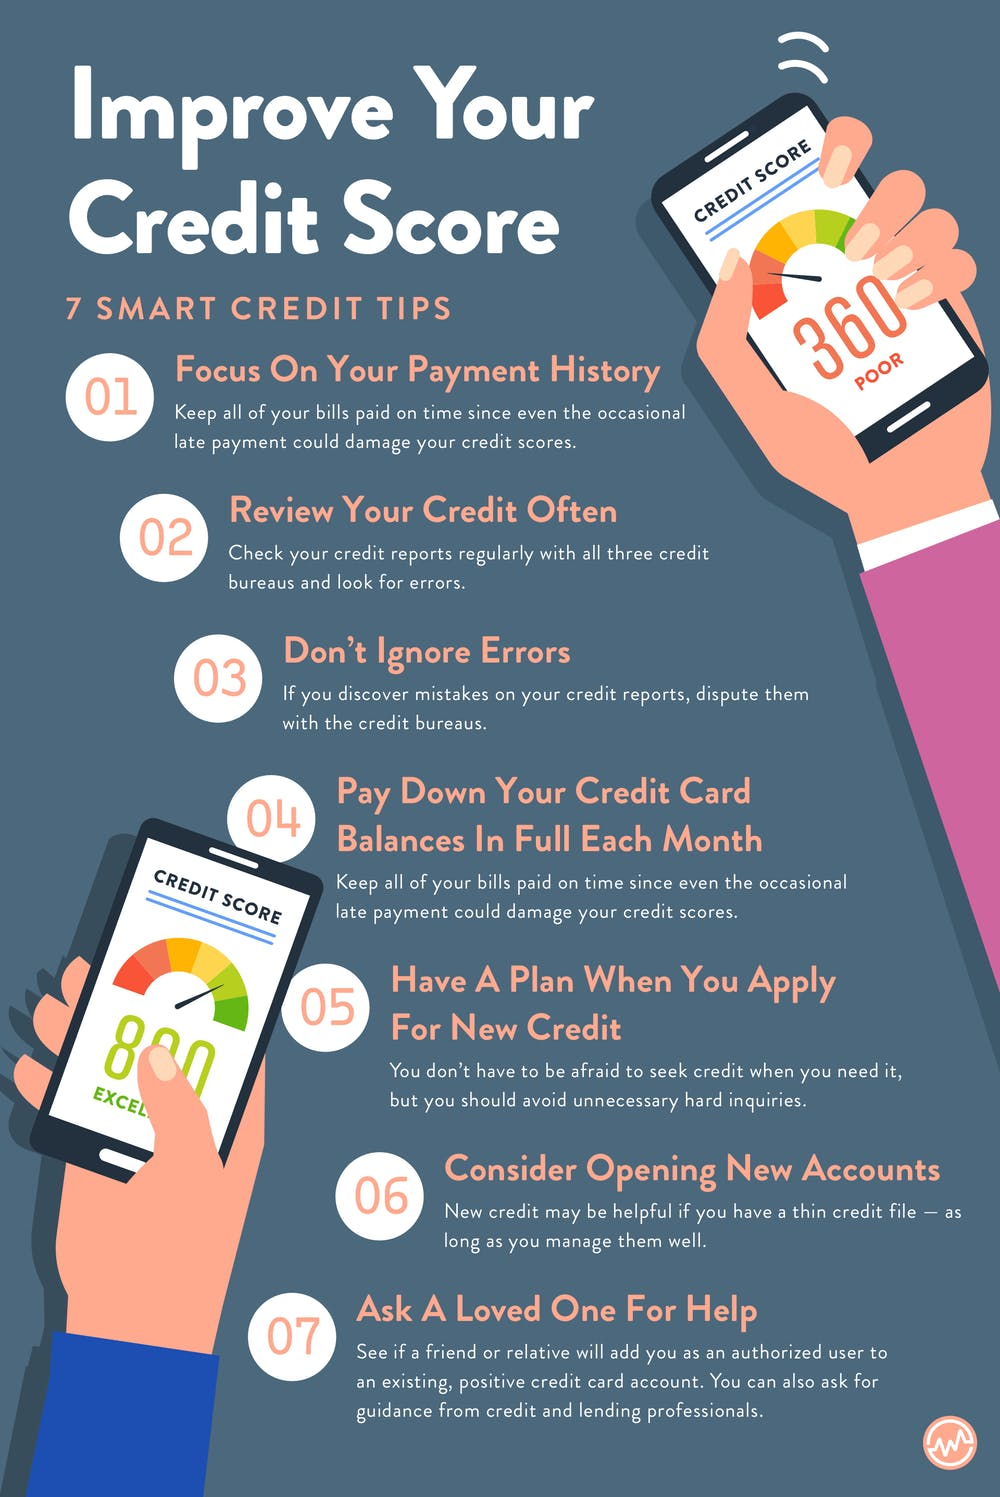 Improve your credit score instead of buying tradlines